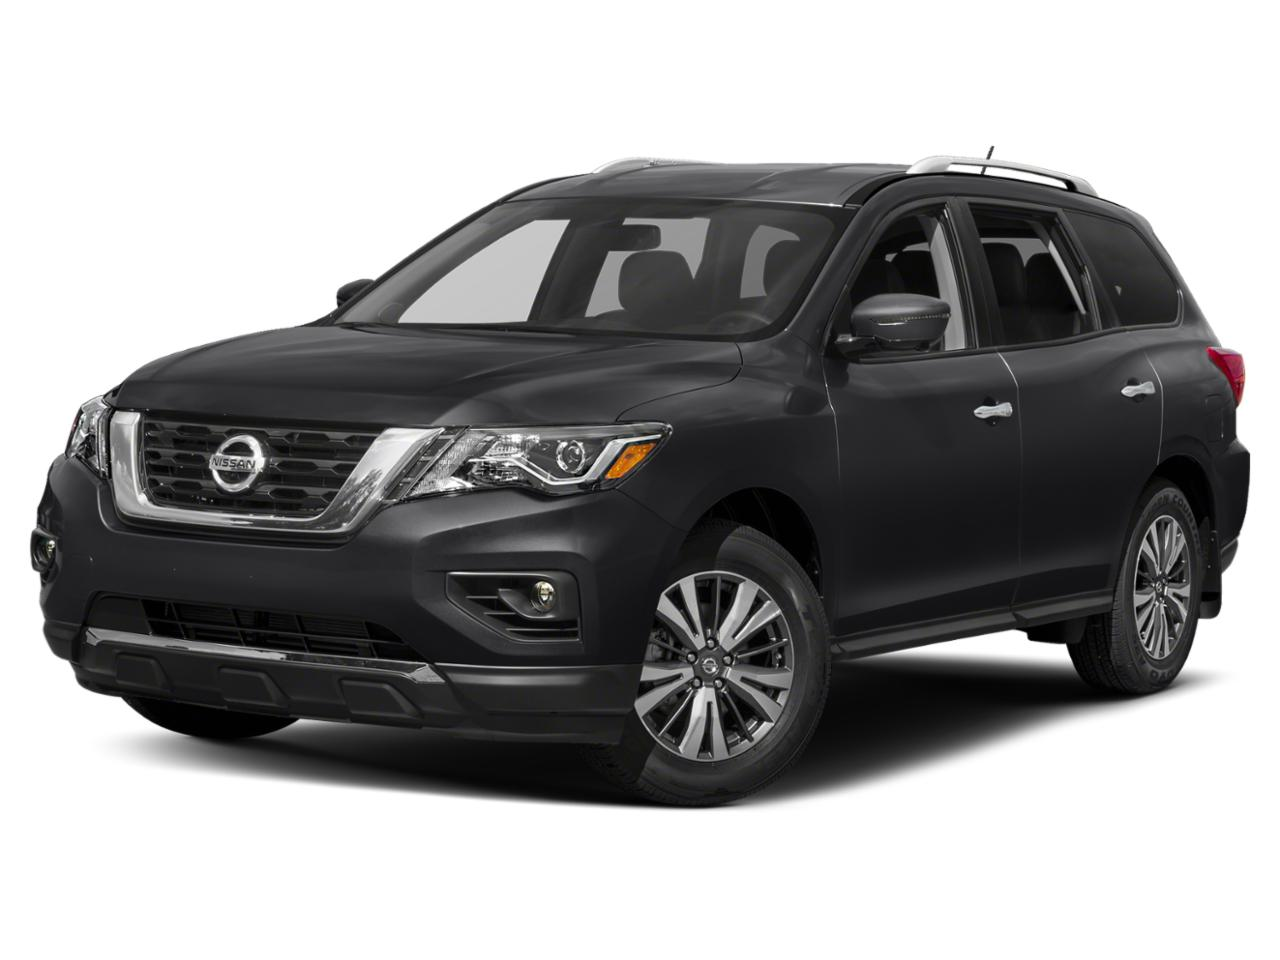 2019 Nissan Pathfinder Vehicle Photo in Baton Rouge, LA 70806